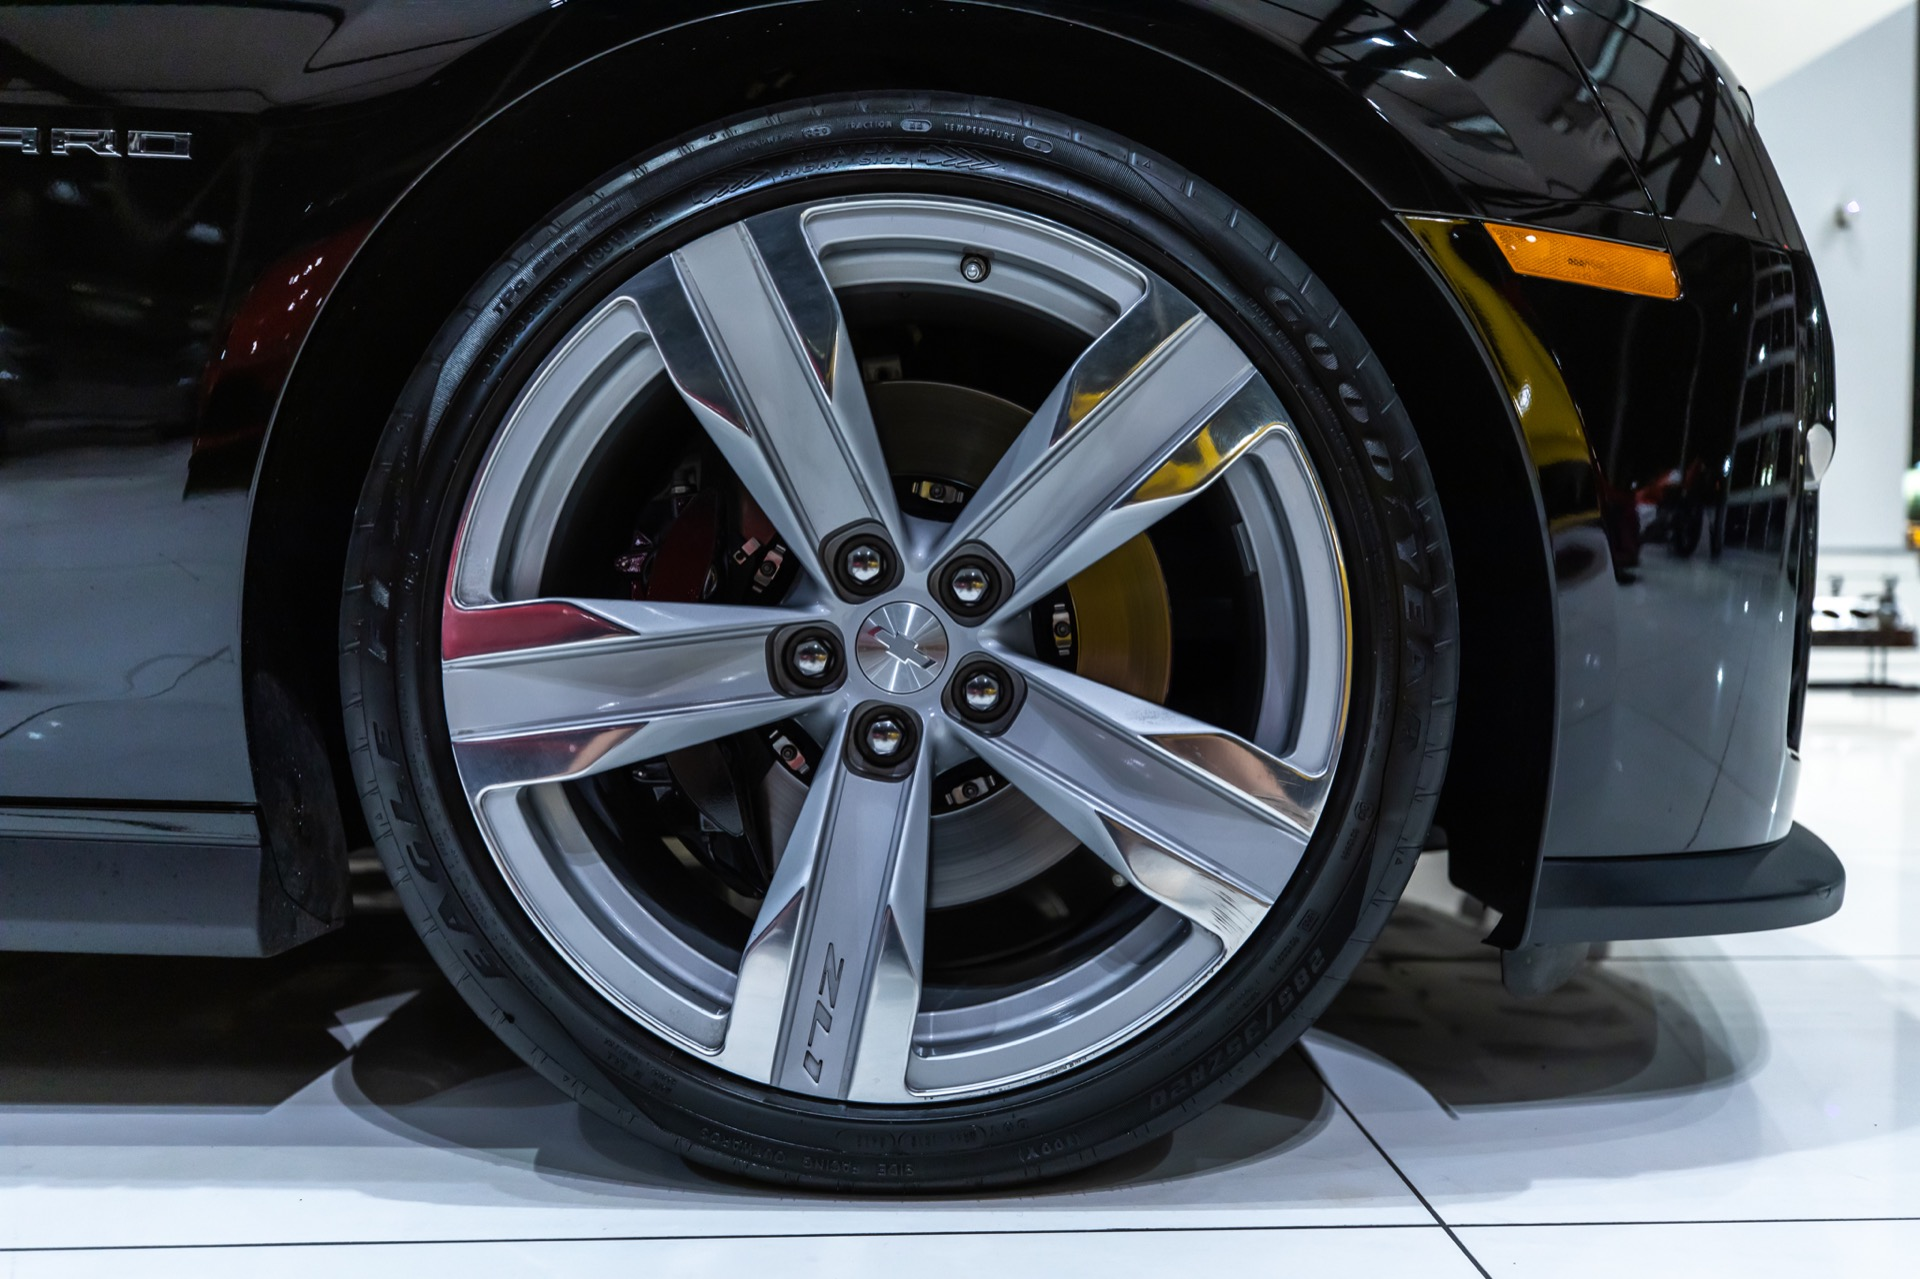 Used-2013-Chevrolet-Camaro-ZL1-Coupe---EXCELLENT-CONDITION-THROUGHOUT-ONLY-11K-MILES